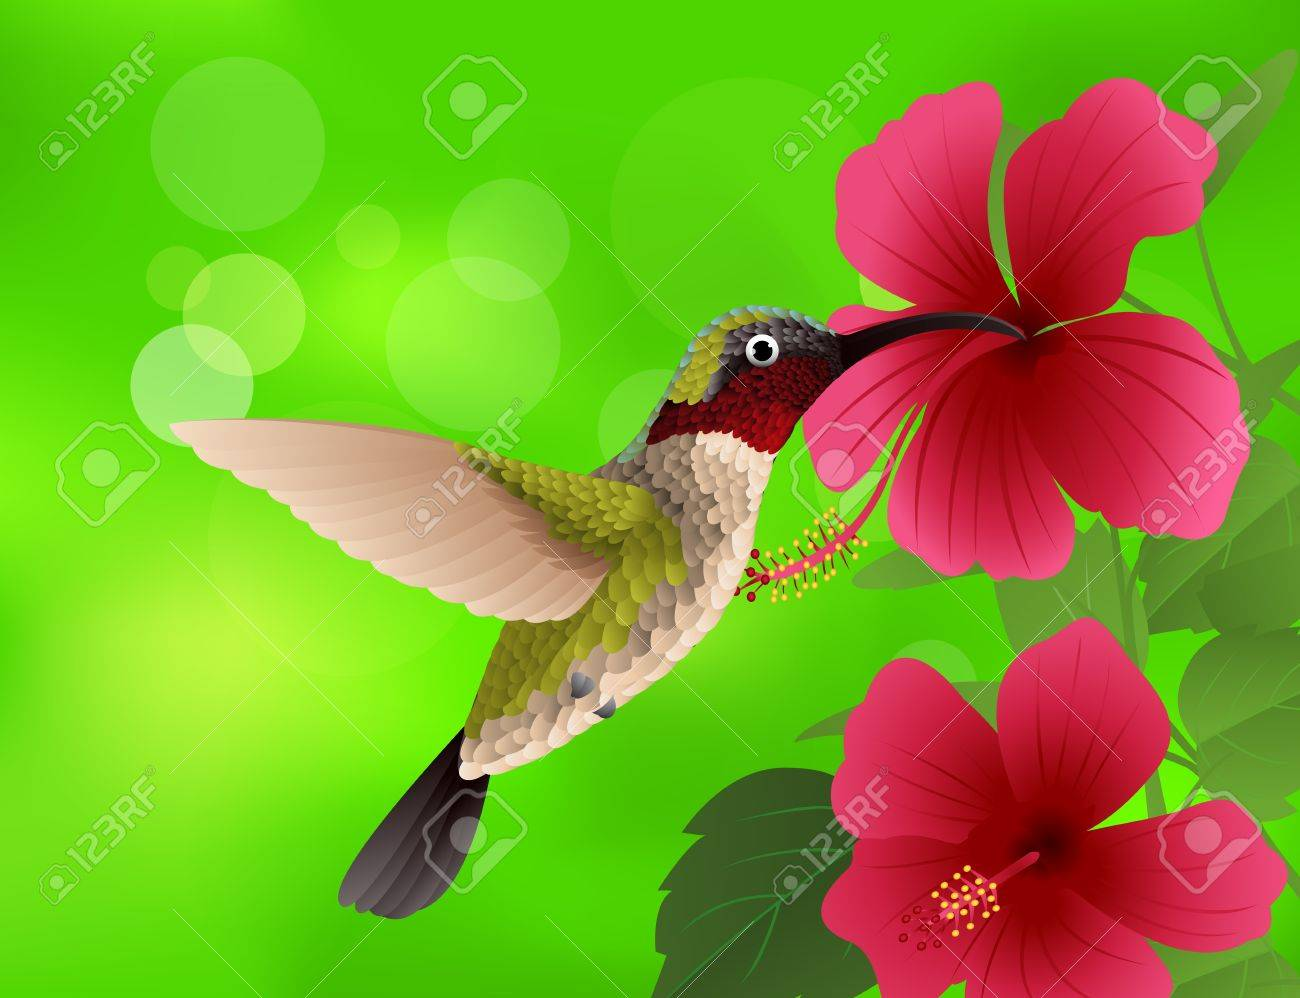 illustration of hummingbird with red flower - 14324643